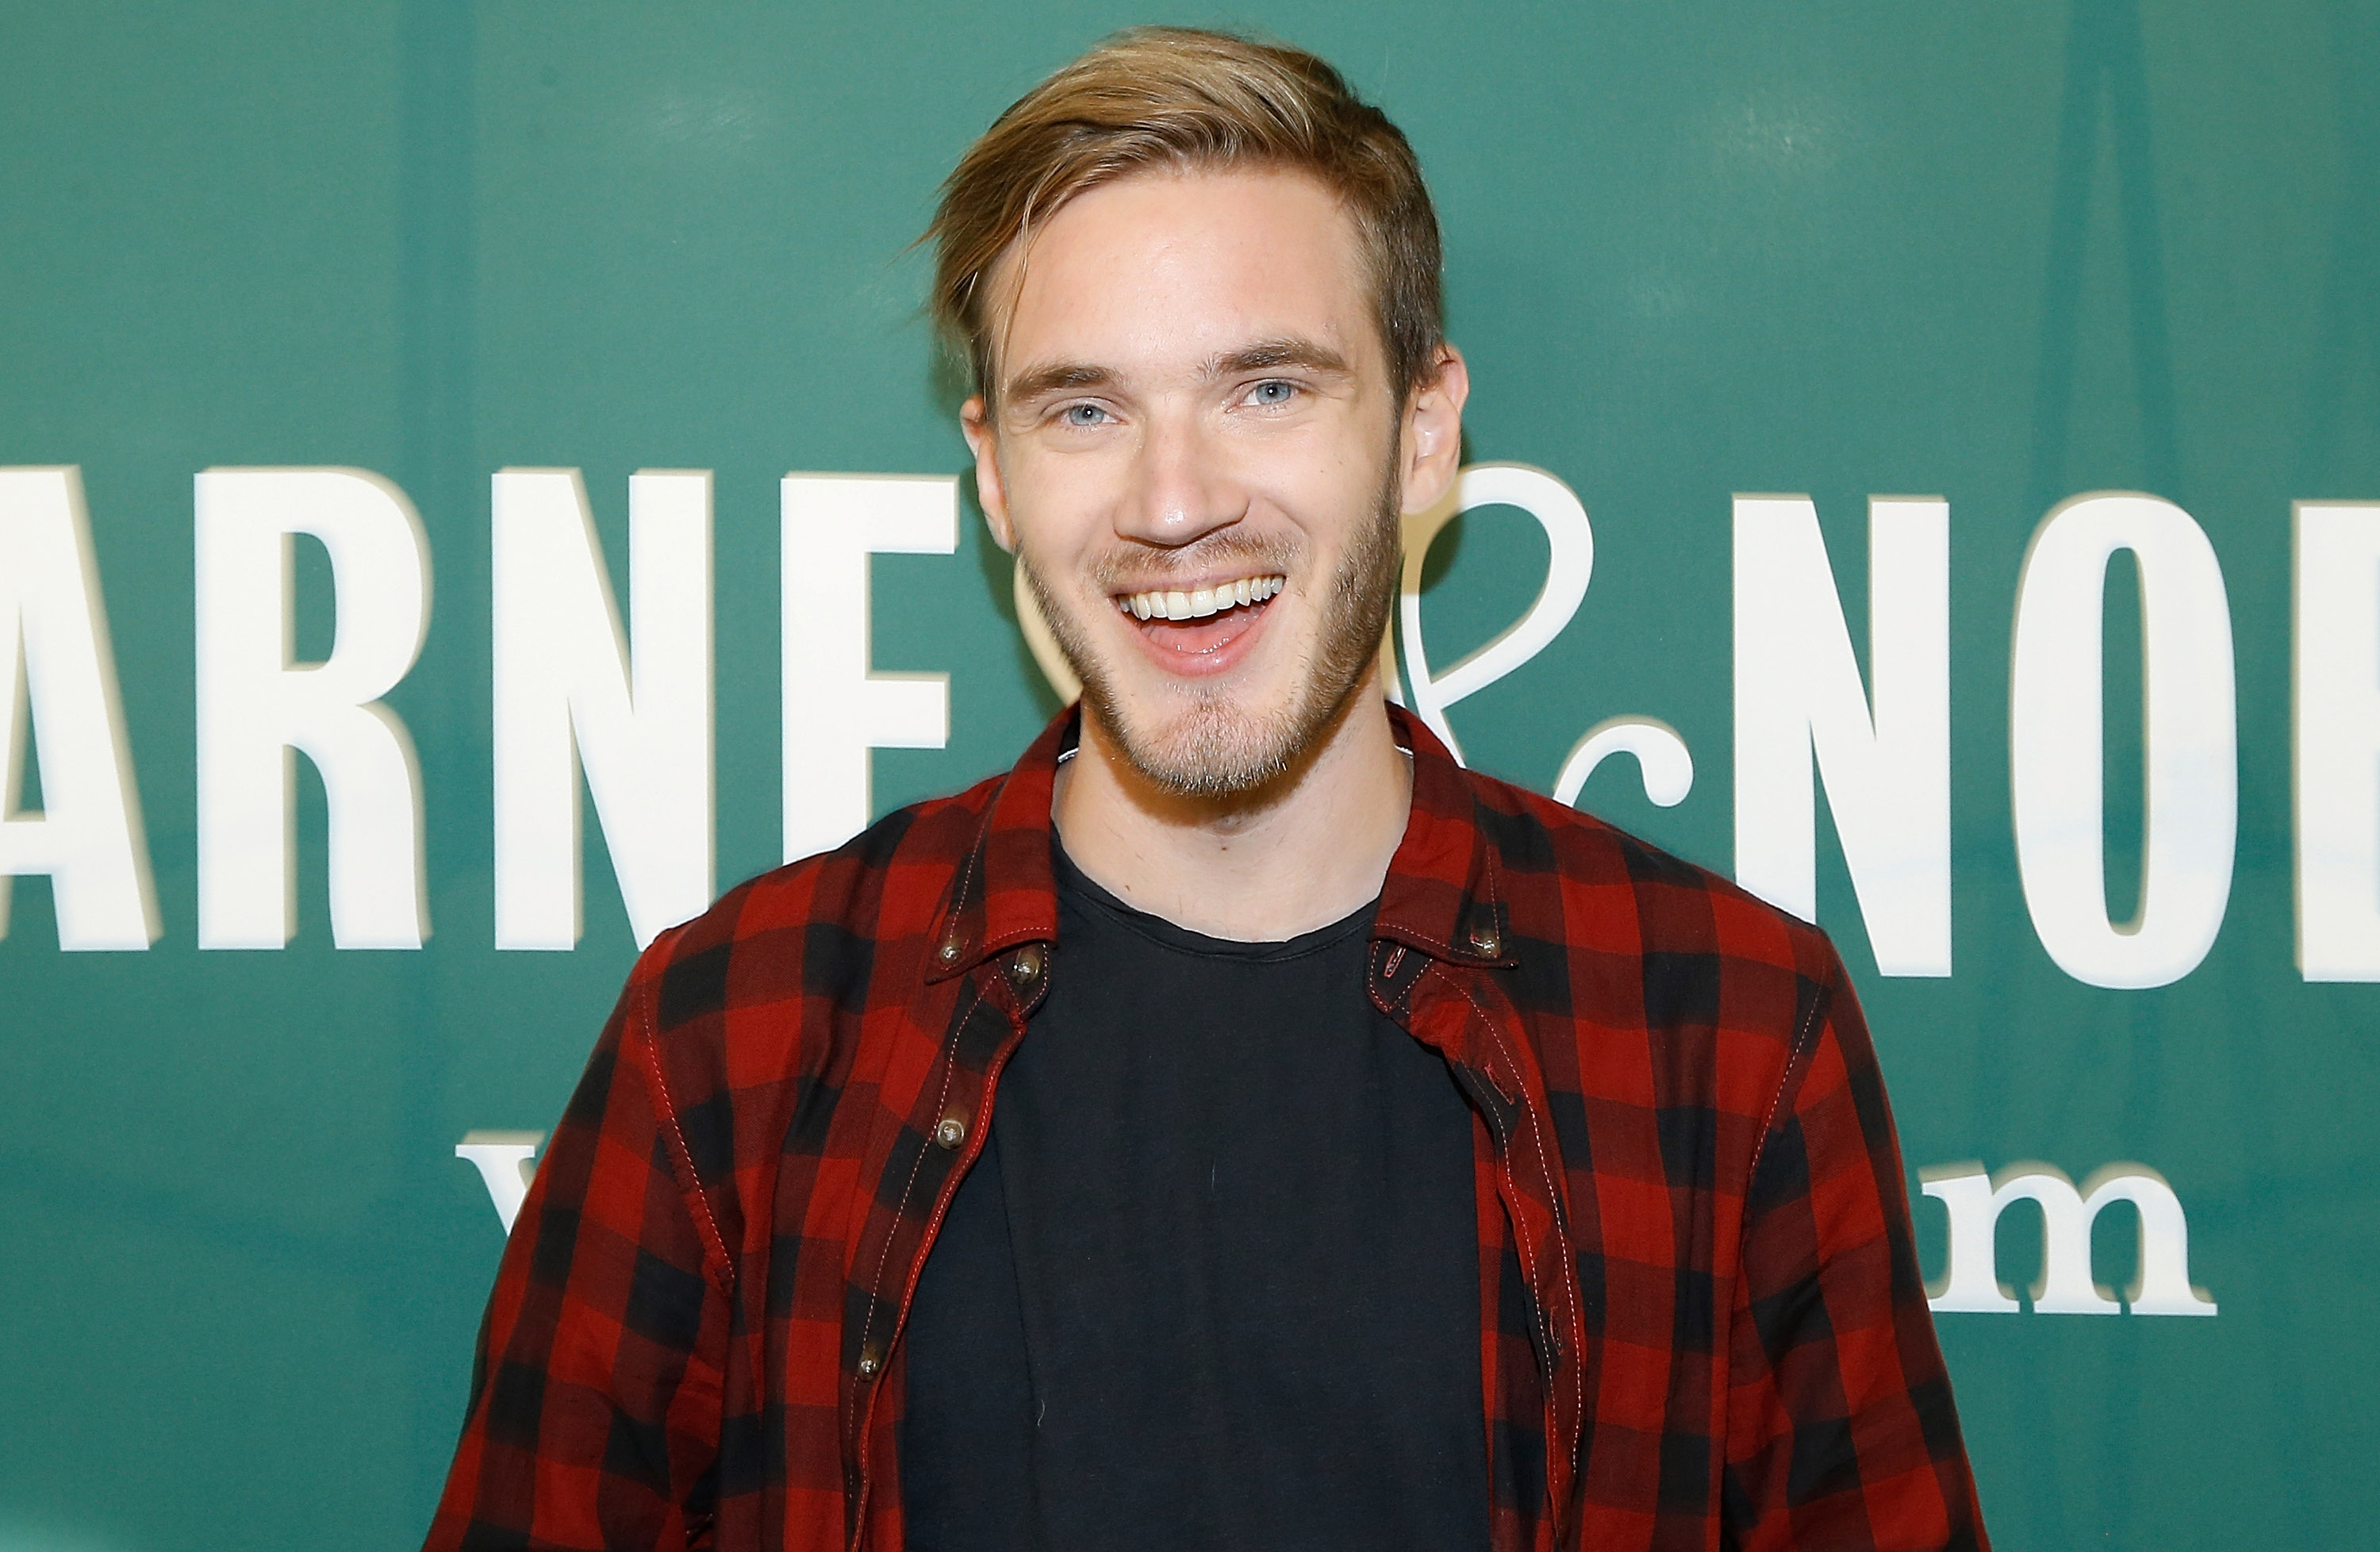 PewDiePie signs copies of his new book  This Book Loves You  at Barnes & Noble Union Square on October 29, 2015 in New York City.